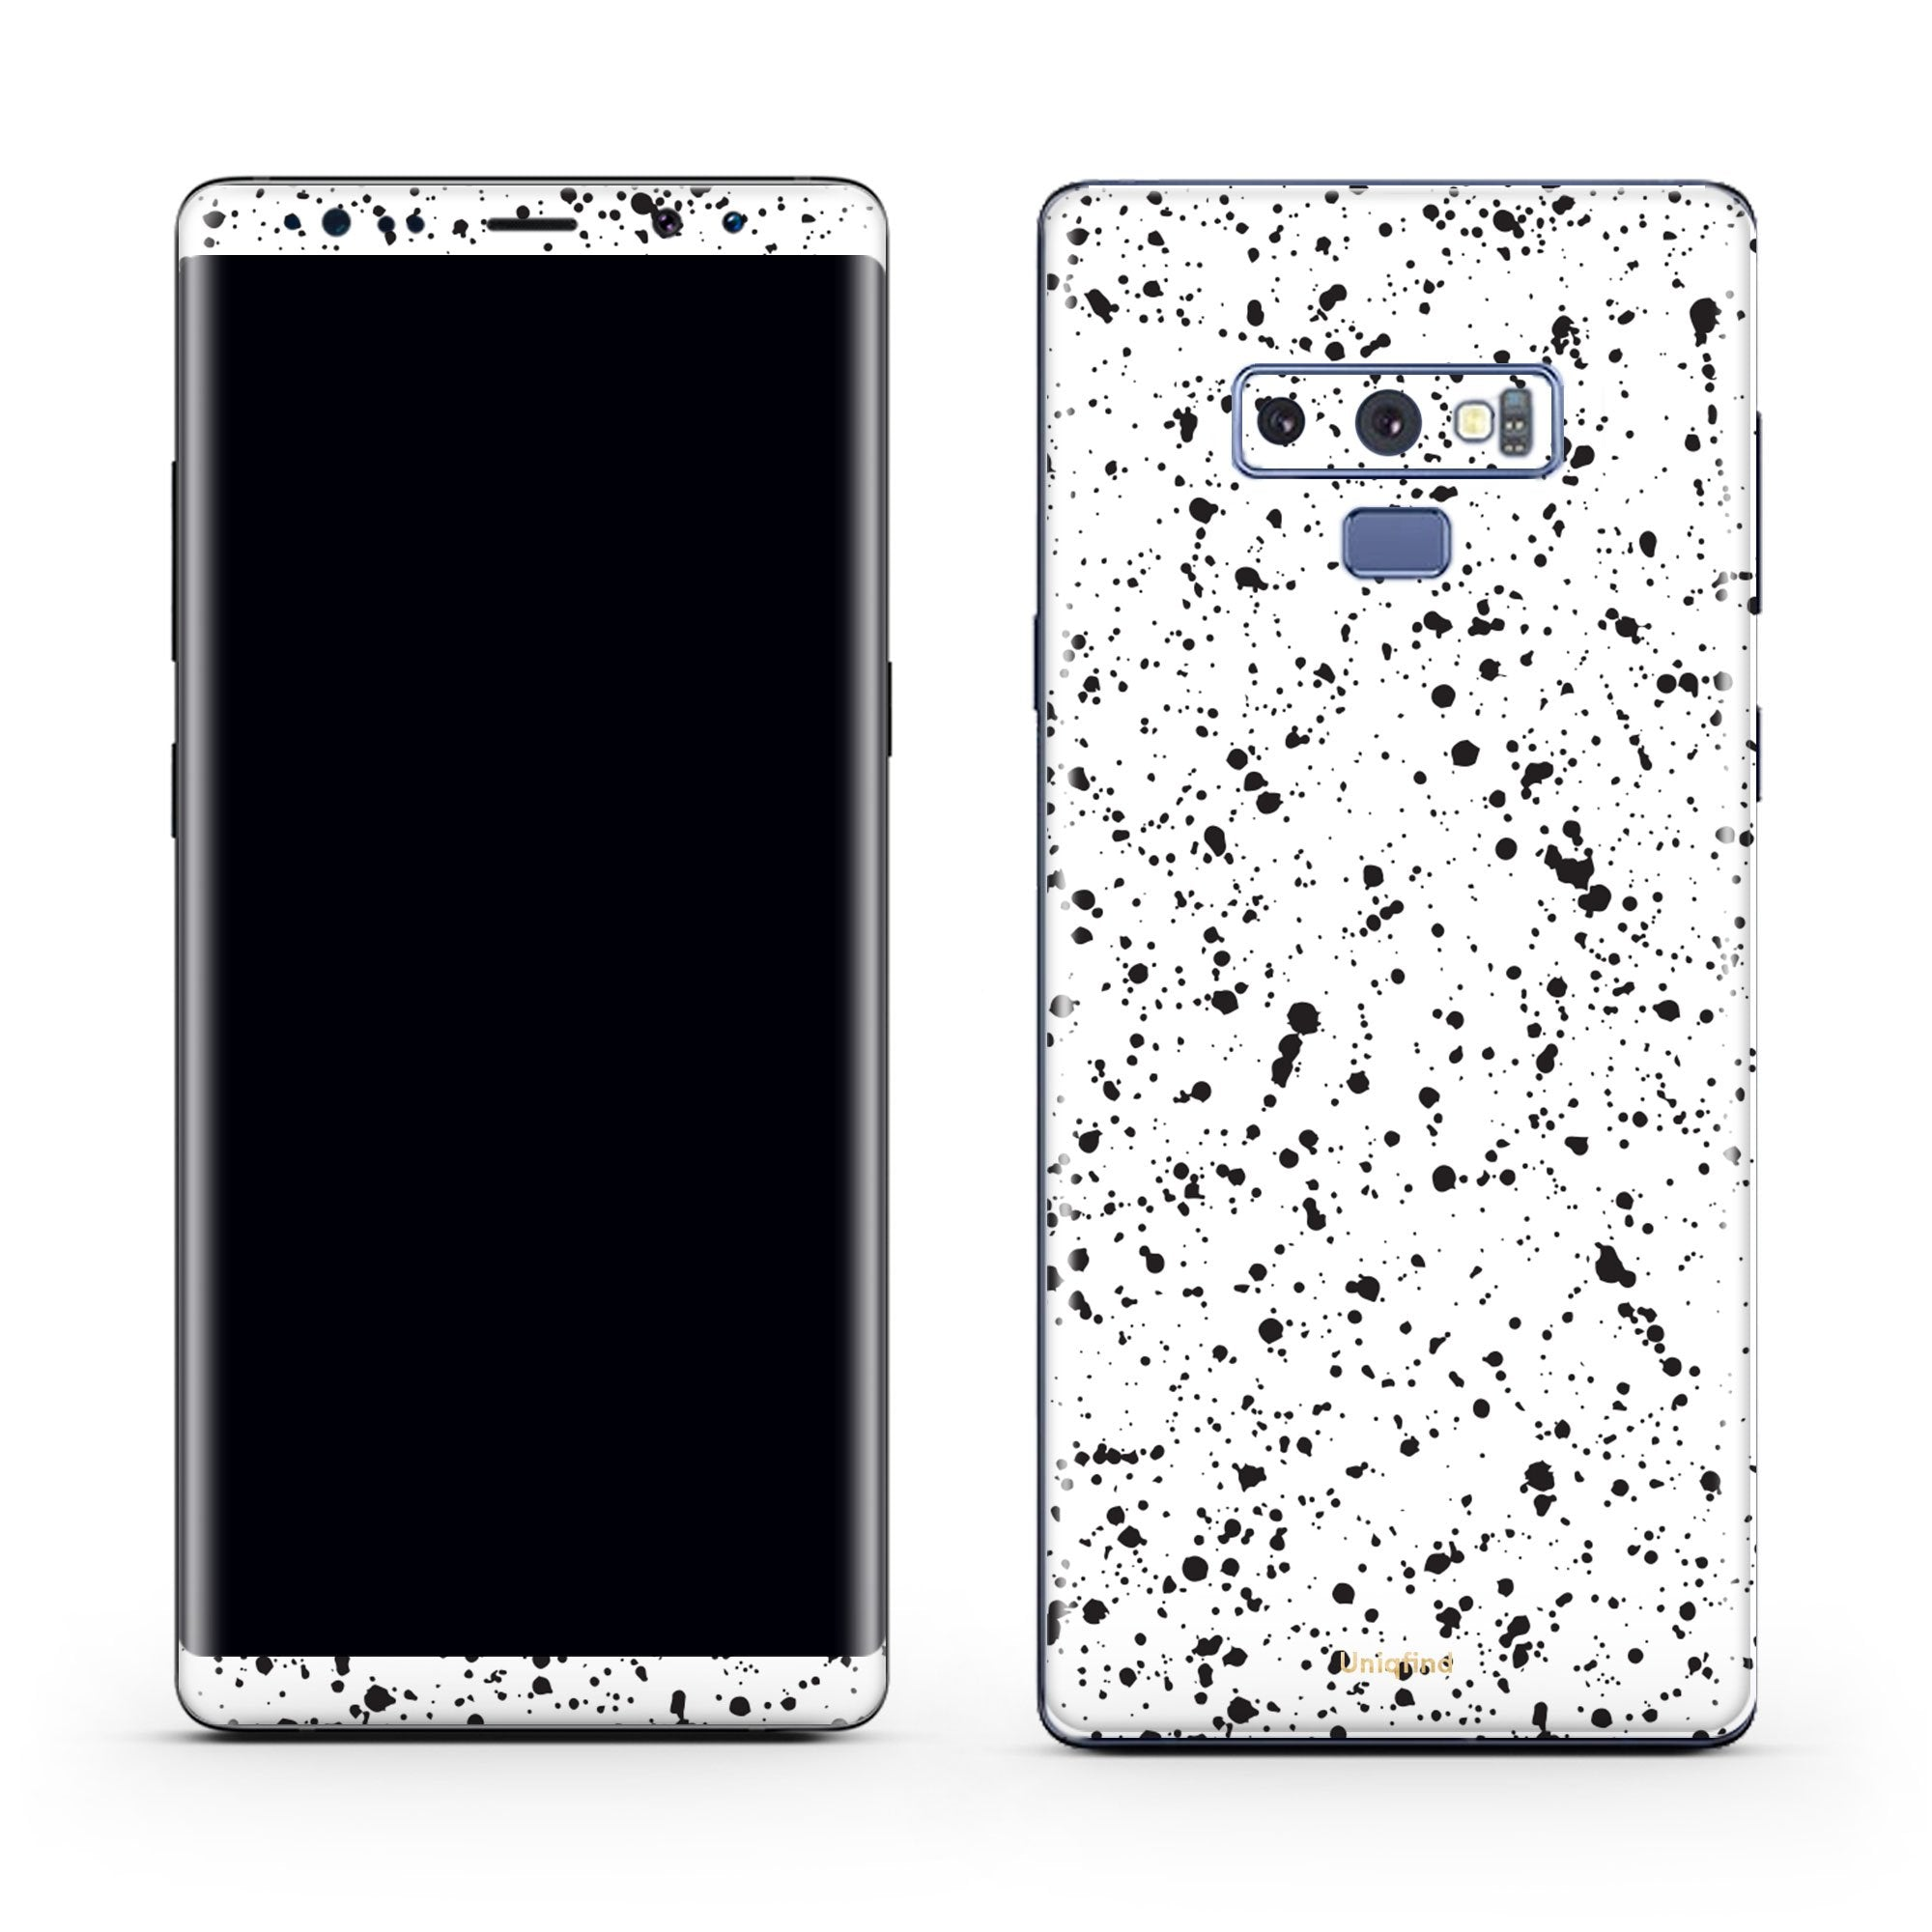 White Speckle Galaxy Note 9 Skin + Case